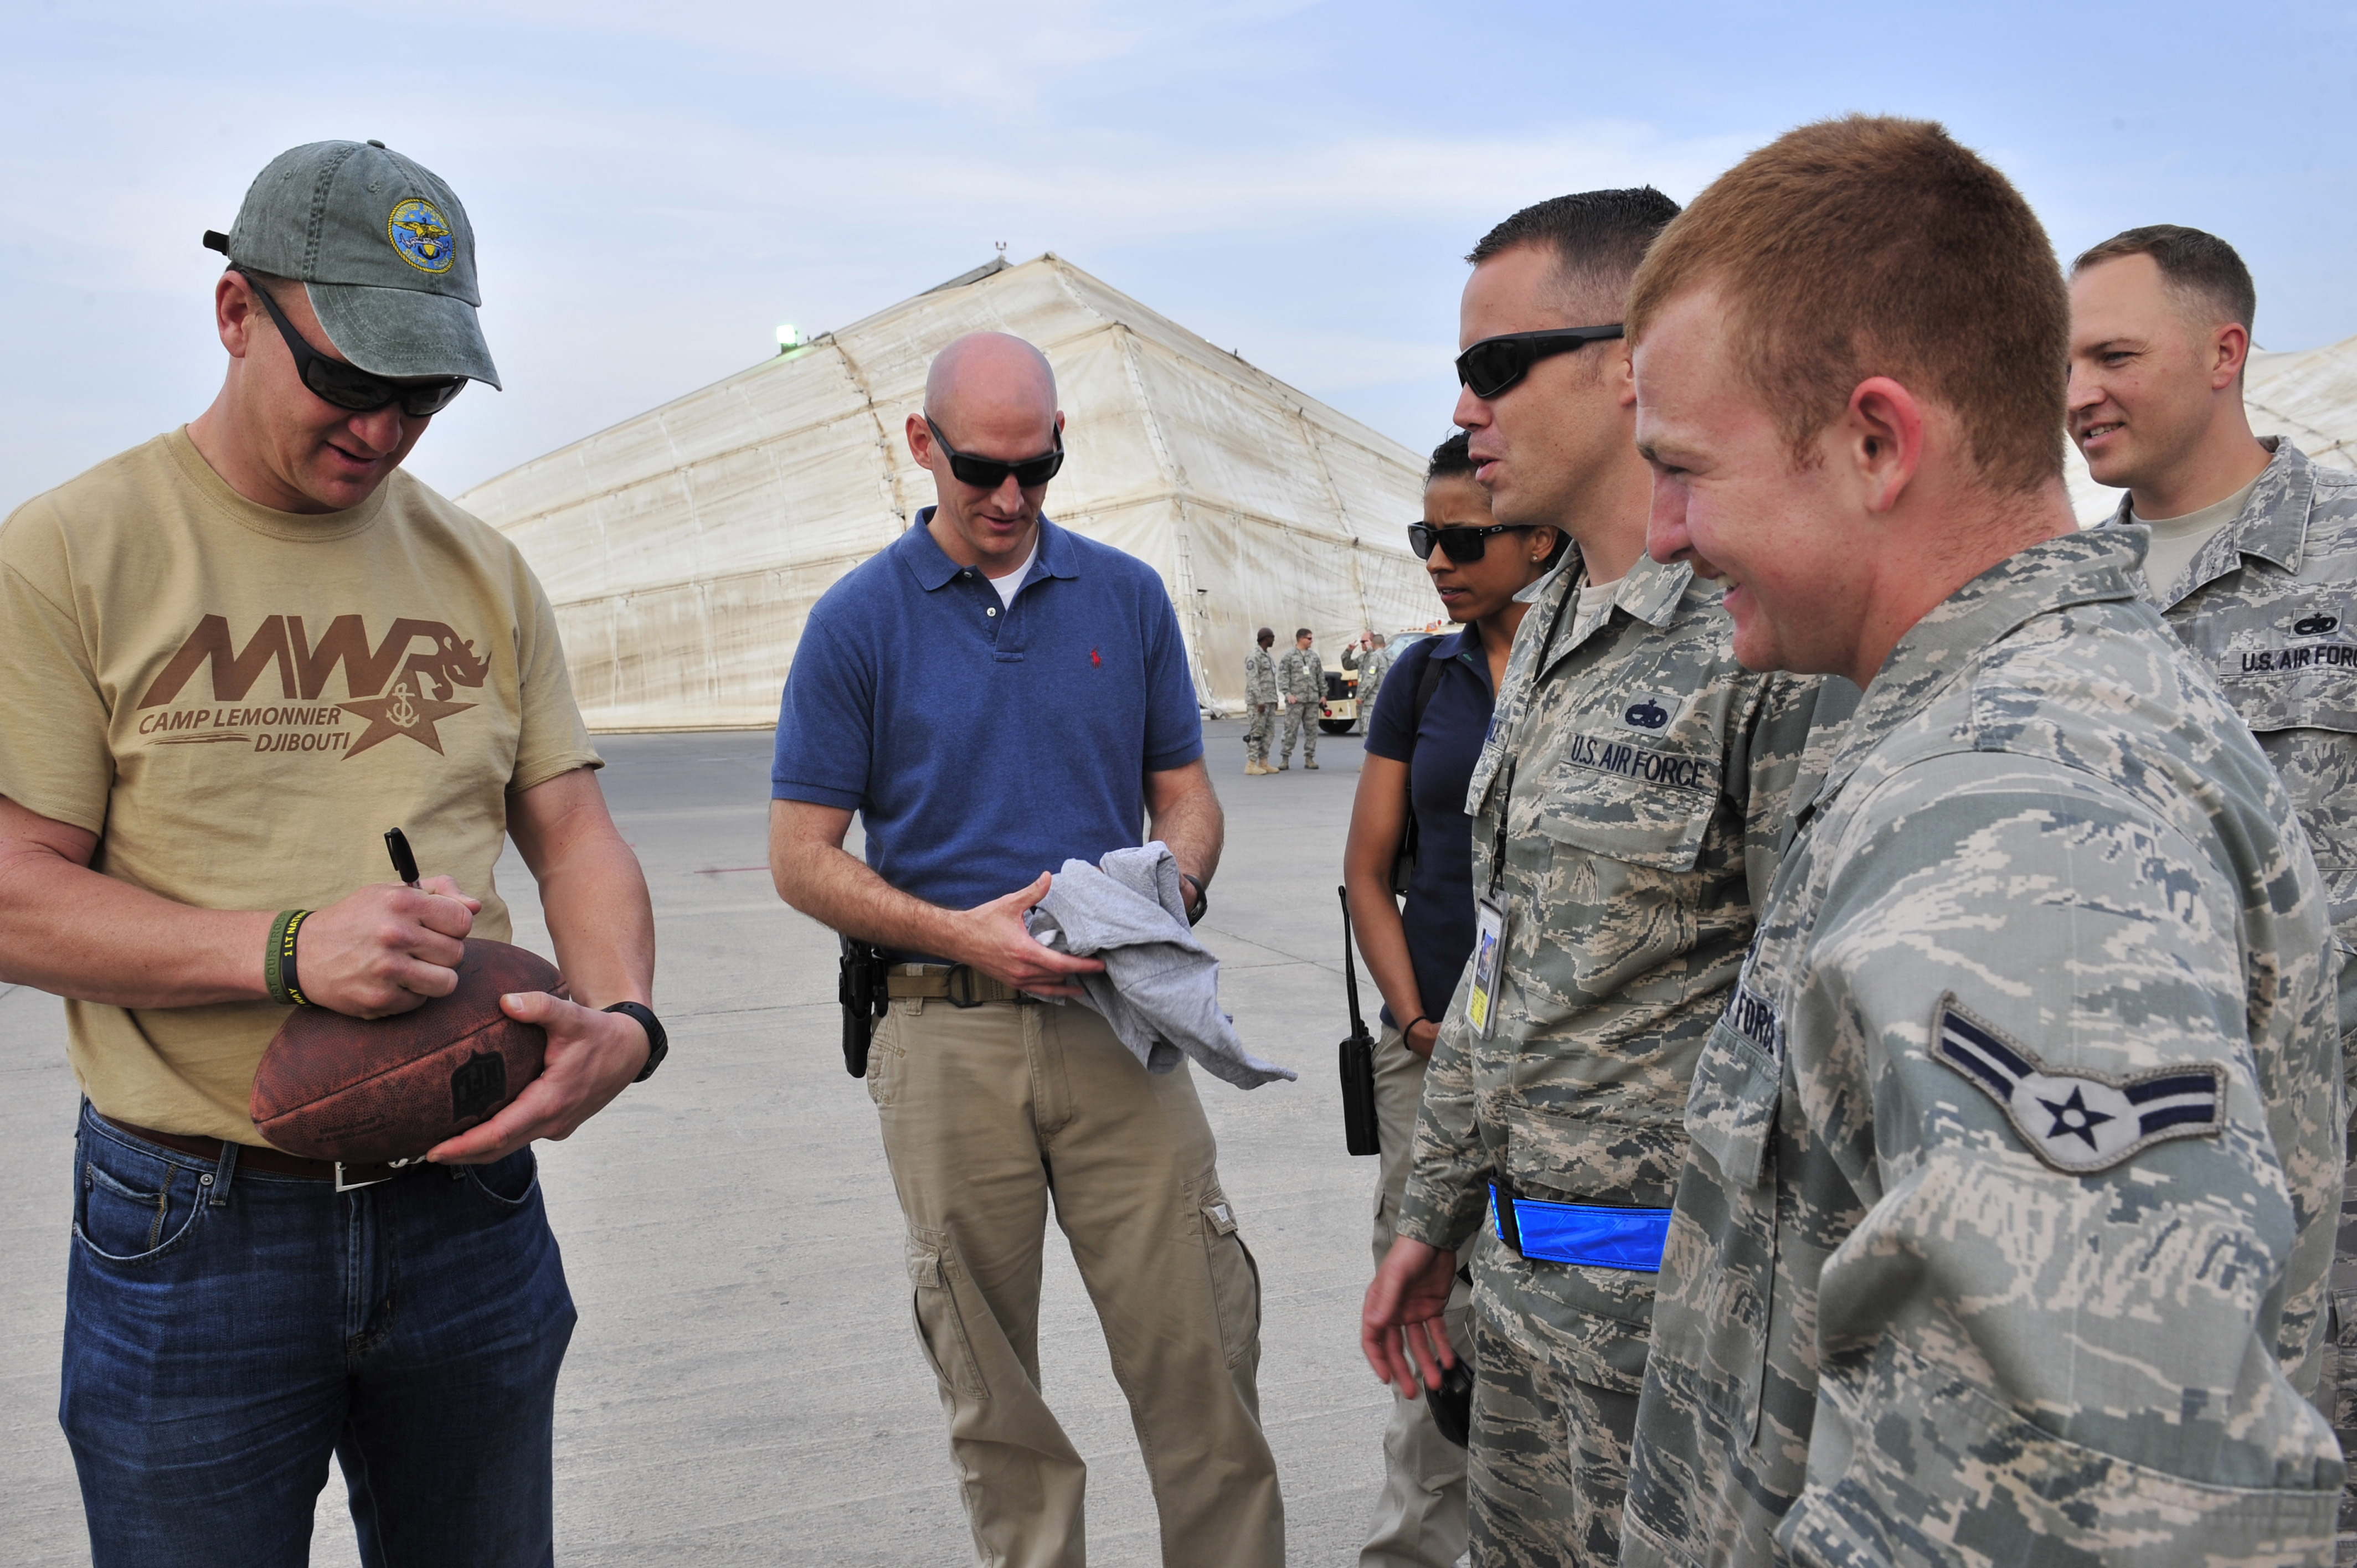 Denver Broncos Quarterback Peyton Manning autographs memorabilia for members of the 380th Air Expeditionary Wing Feb. 28, 2013, in Southwest Asia. (U.S. Air Force photo/Tech. Sgt. Christina M. Styer)